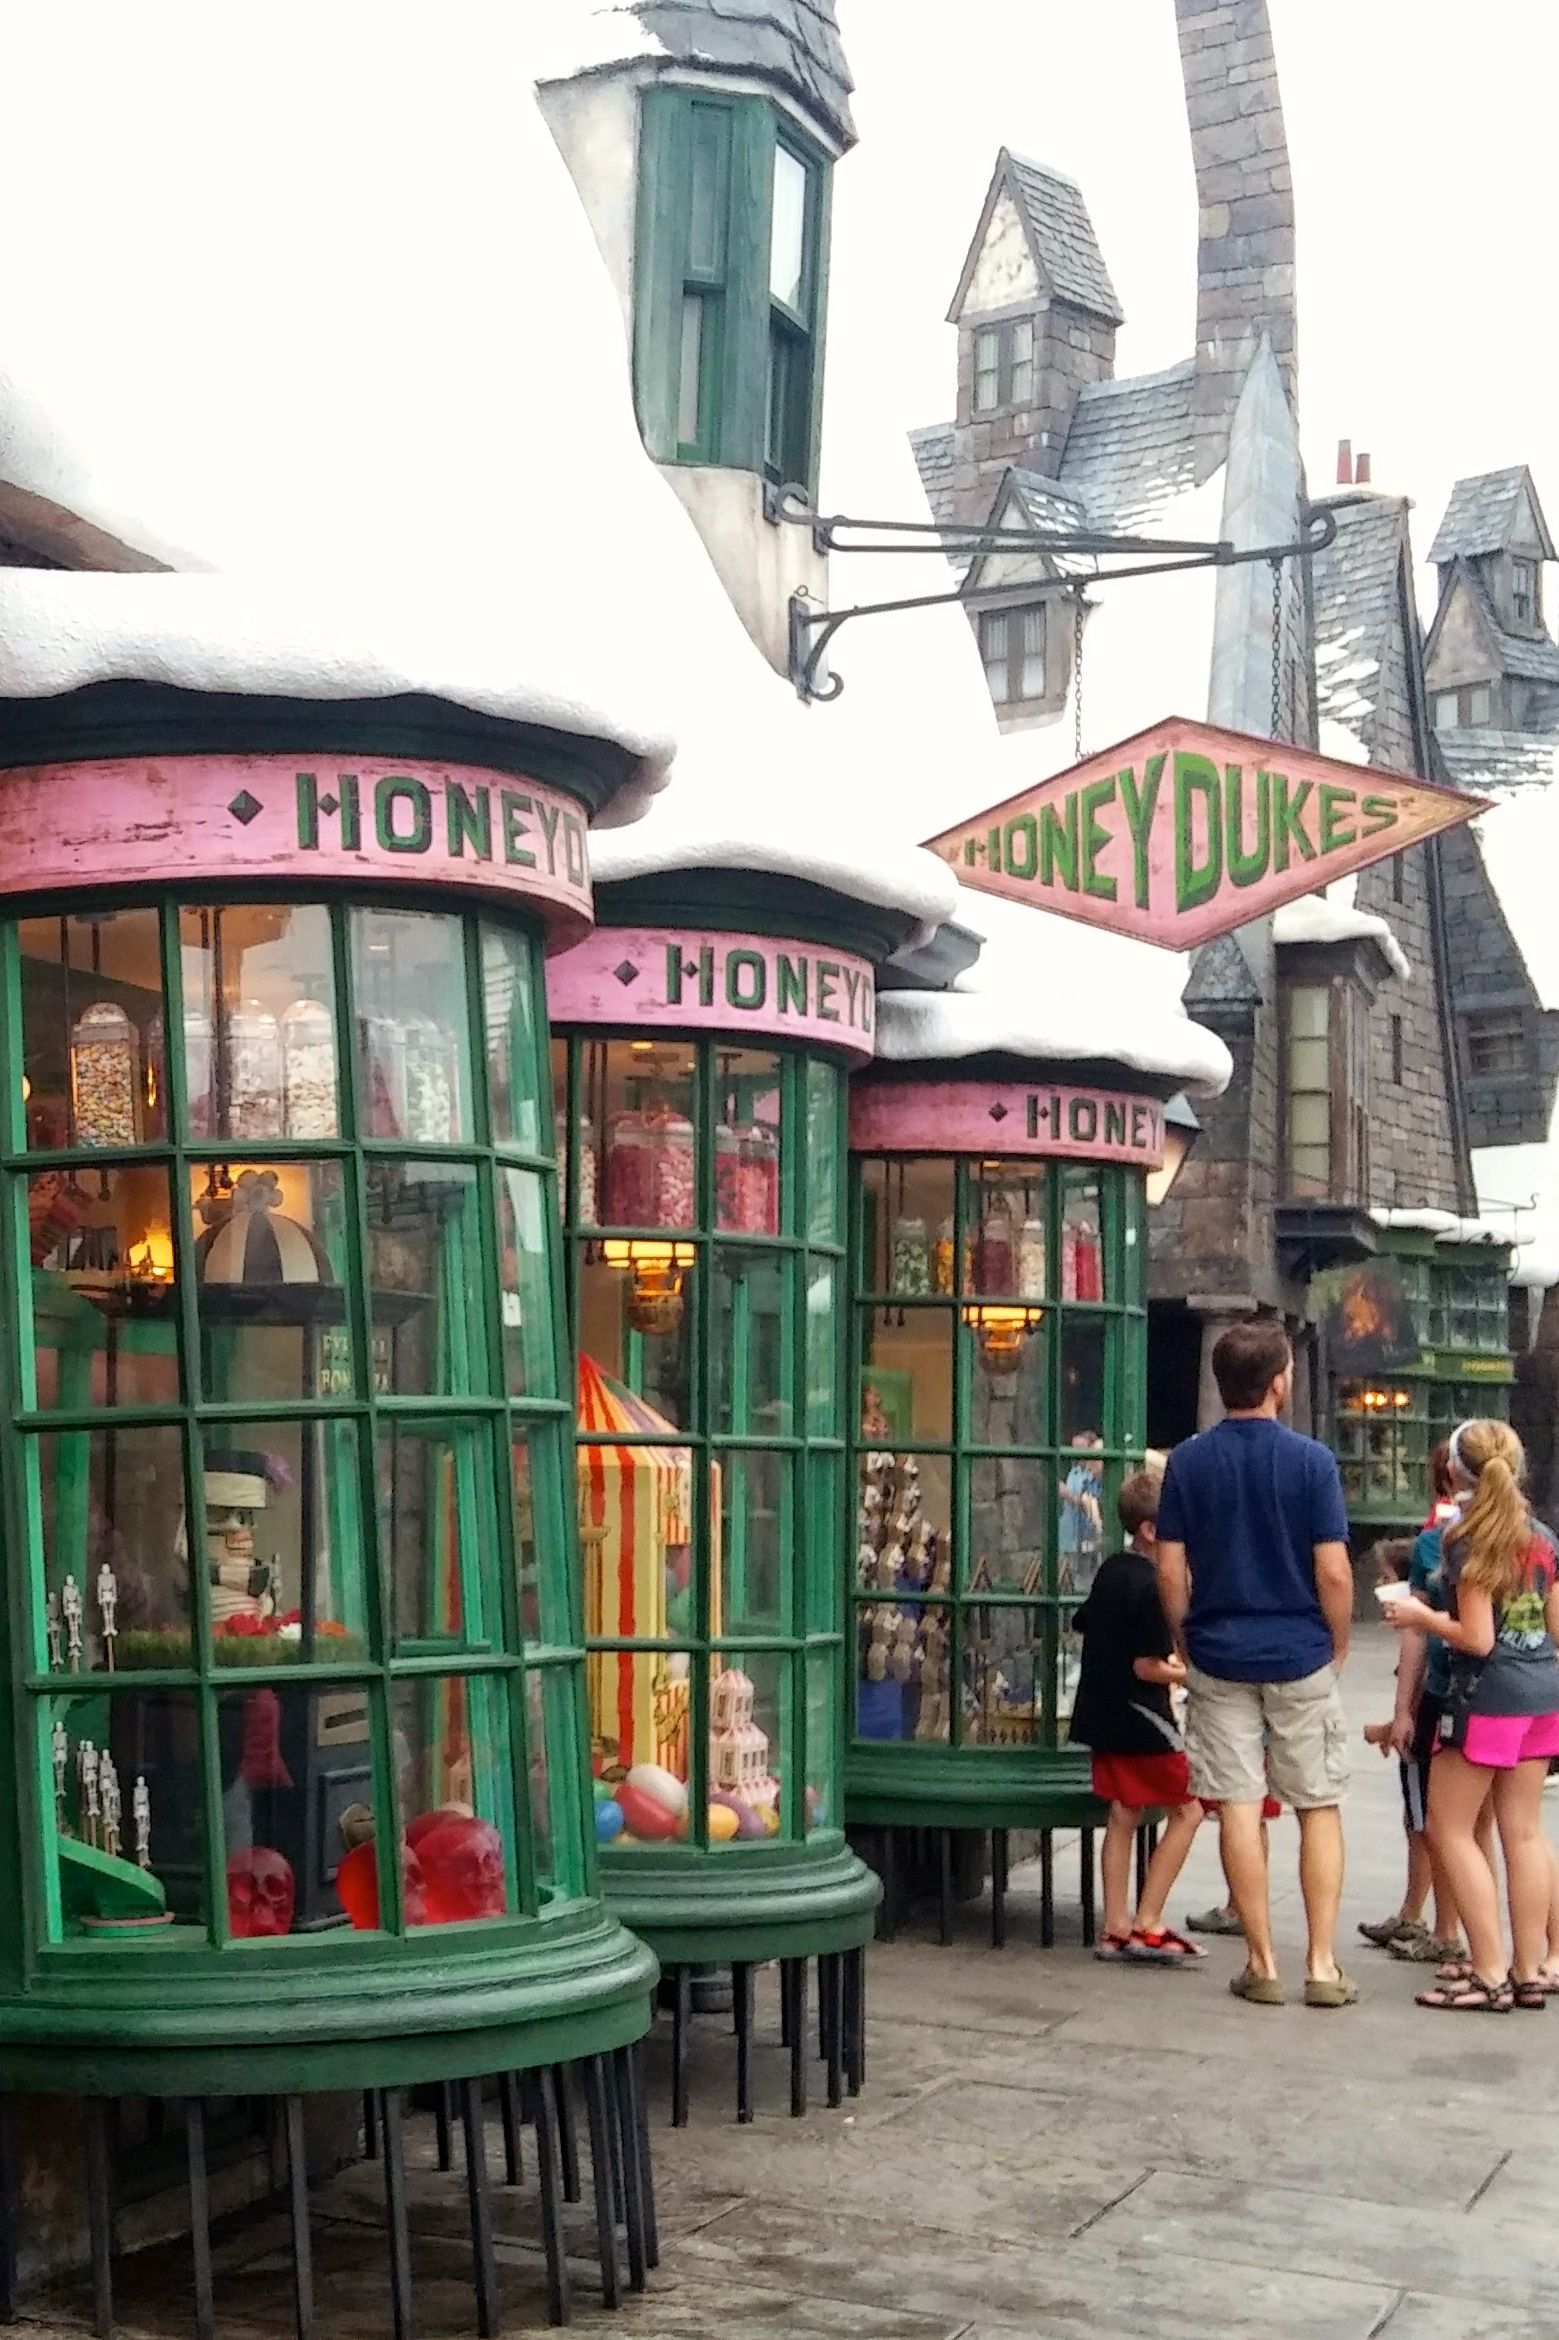 About Harry Potter Shop Includes interactive stories, games, original online features, Classic Looney Tunes cartoons, and specials for upcoming and current movies, such as .